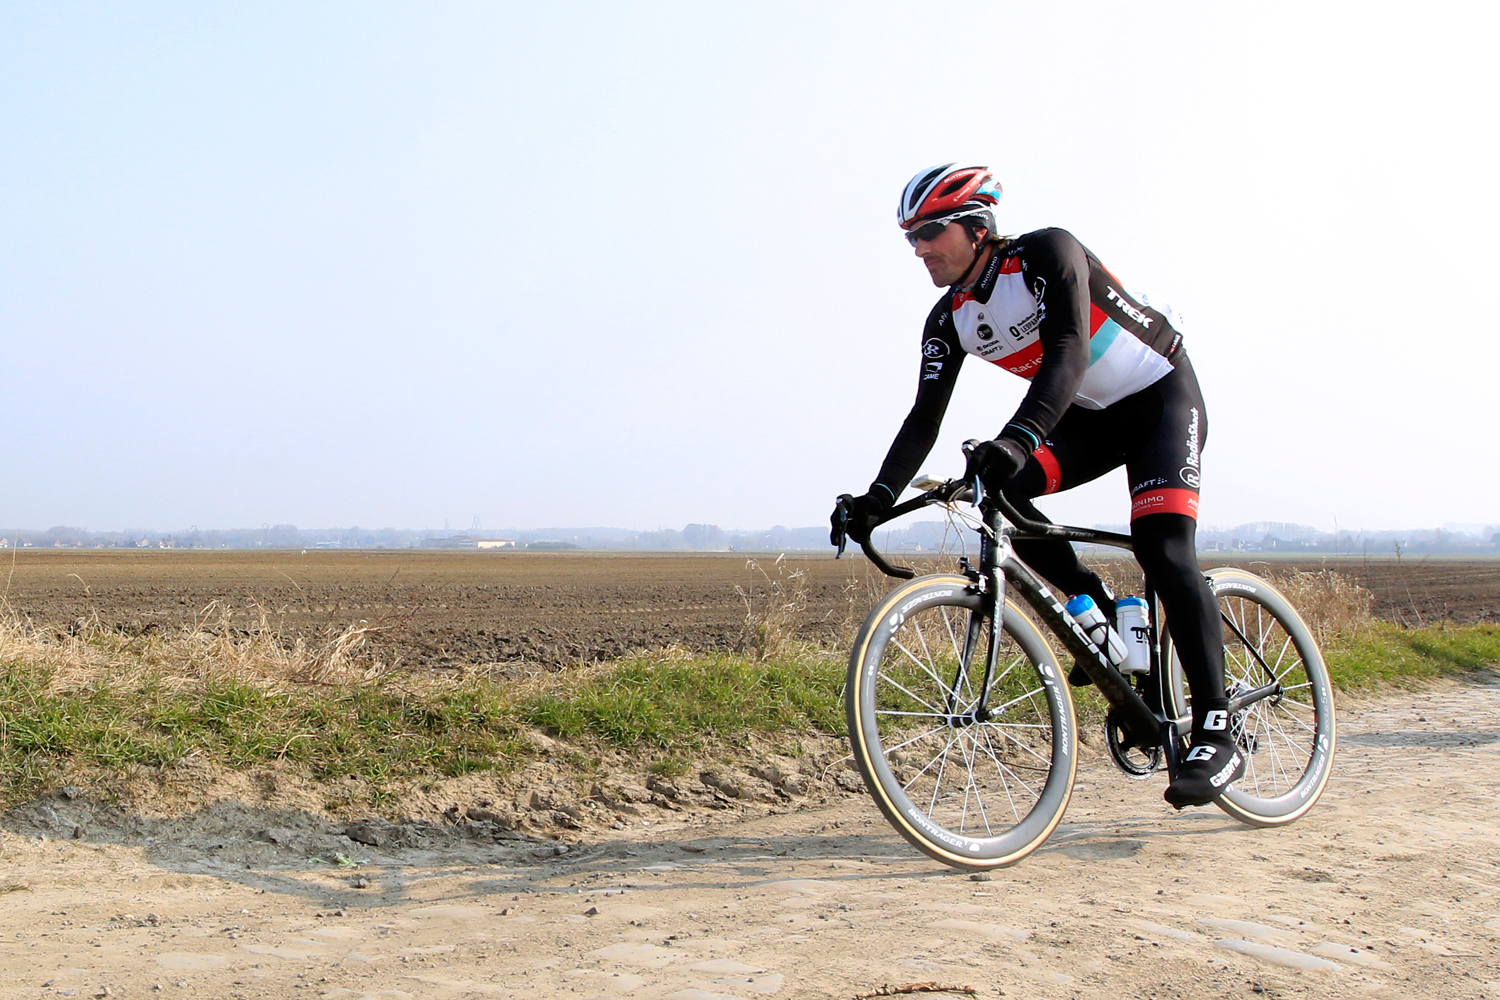 After snatching victory in the Tour of Flanders on April 6, Cancellara was the favorite going into Sunday's Paris-Roubaix. Every time he's won that race, the 33-year-old Swiss Time Machine has followed it up with a win in The Hell of The North. This year, though, he finished third.